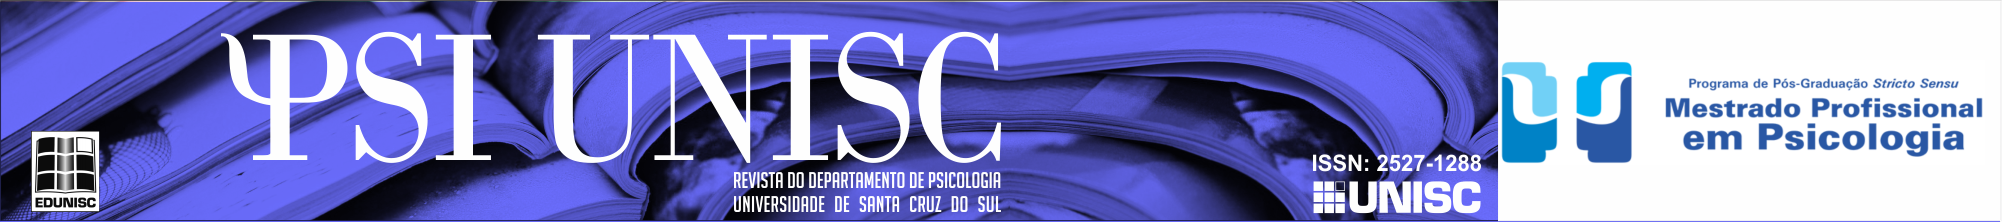 PSI UNISC - revista do departamento de psicologia - Universidade de Santa Cruz do Sul